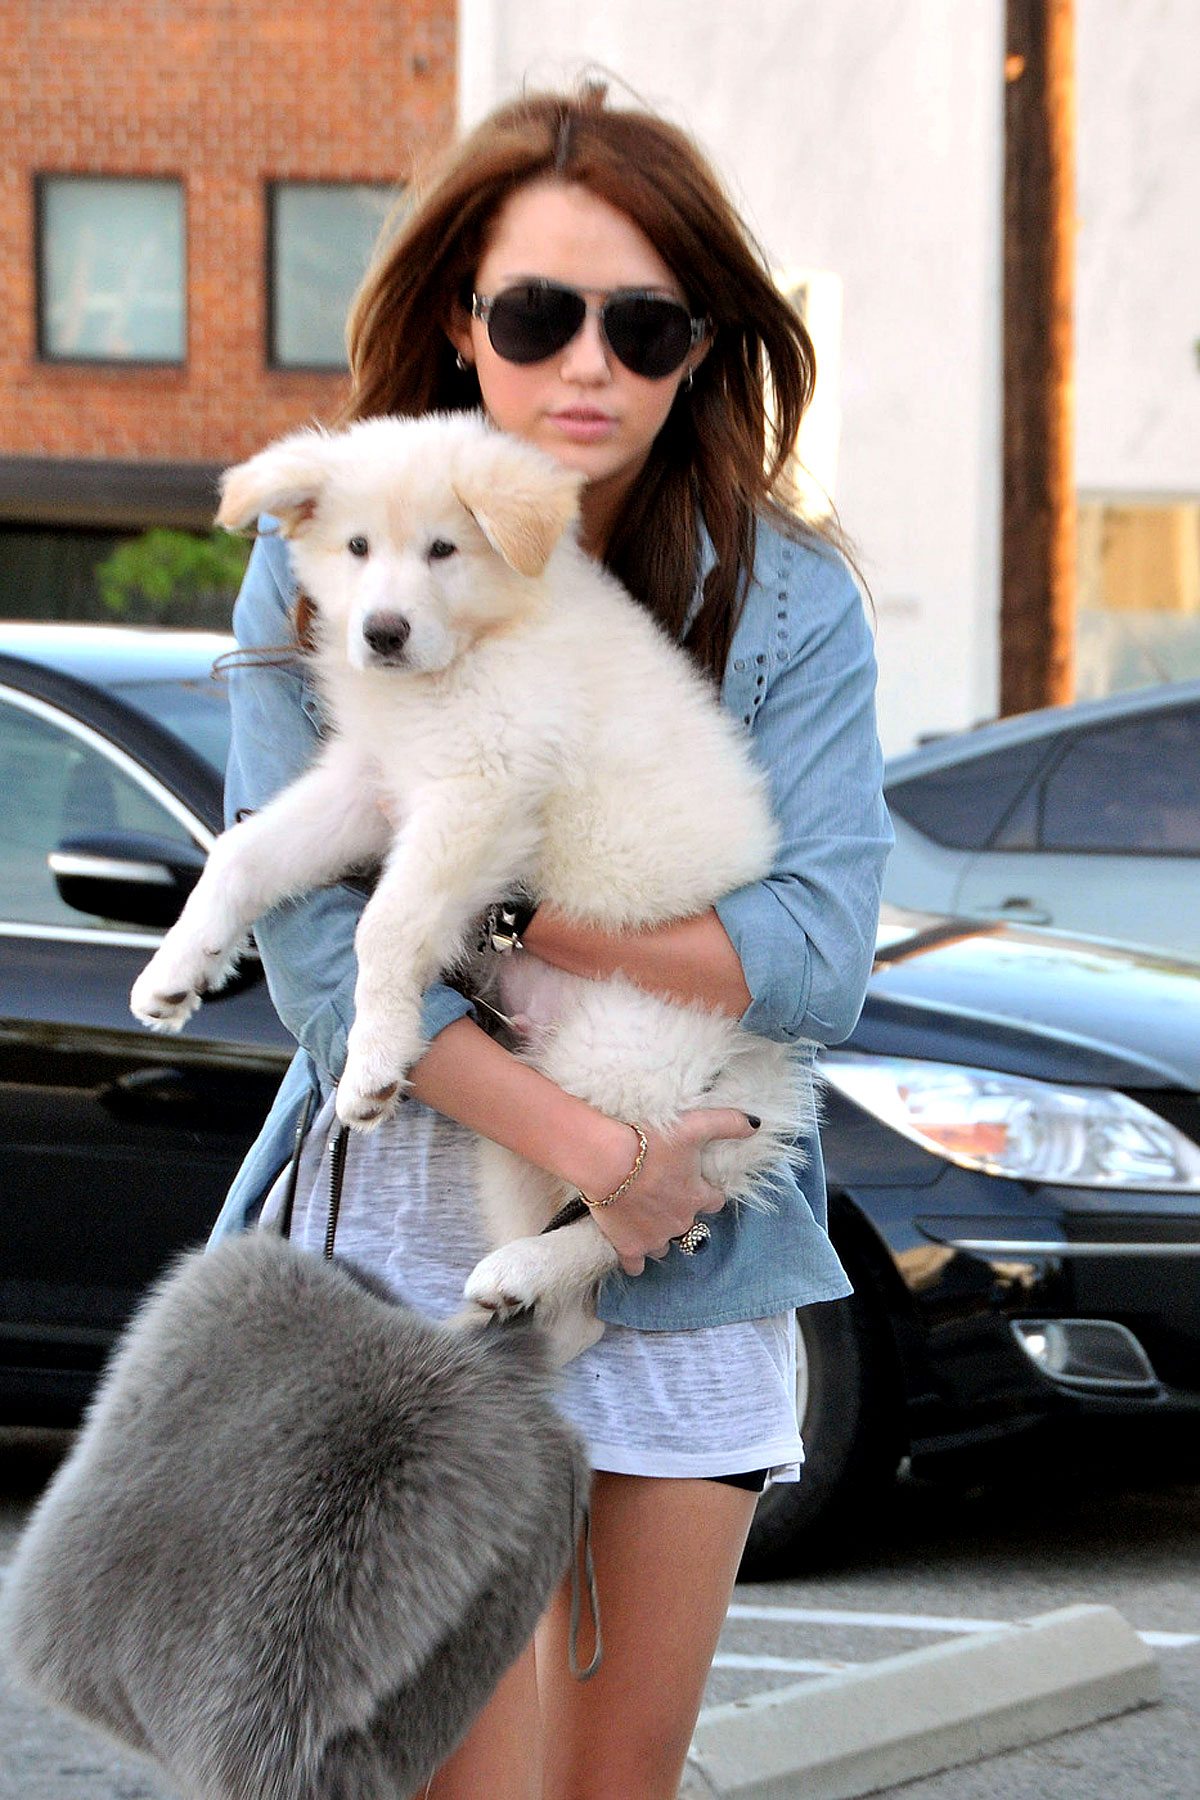 Miley Cyrus Hijacks Puppy's Cuteness In Blatant Attempt at Image Control (PHOTOS)